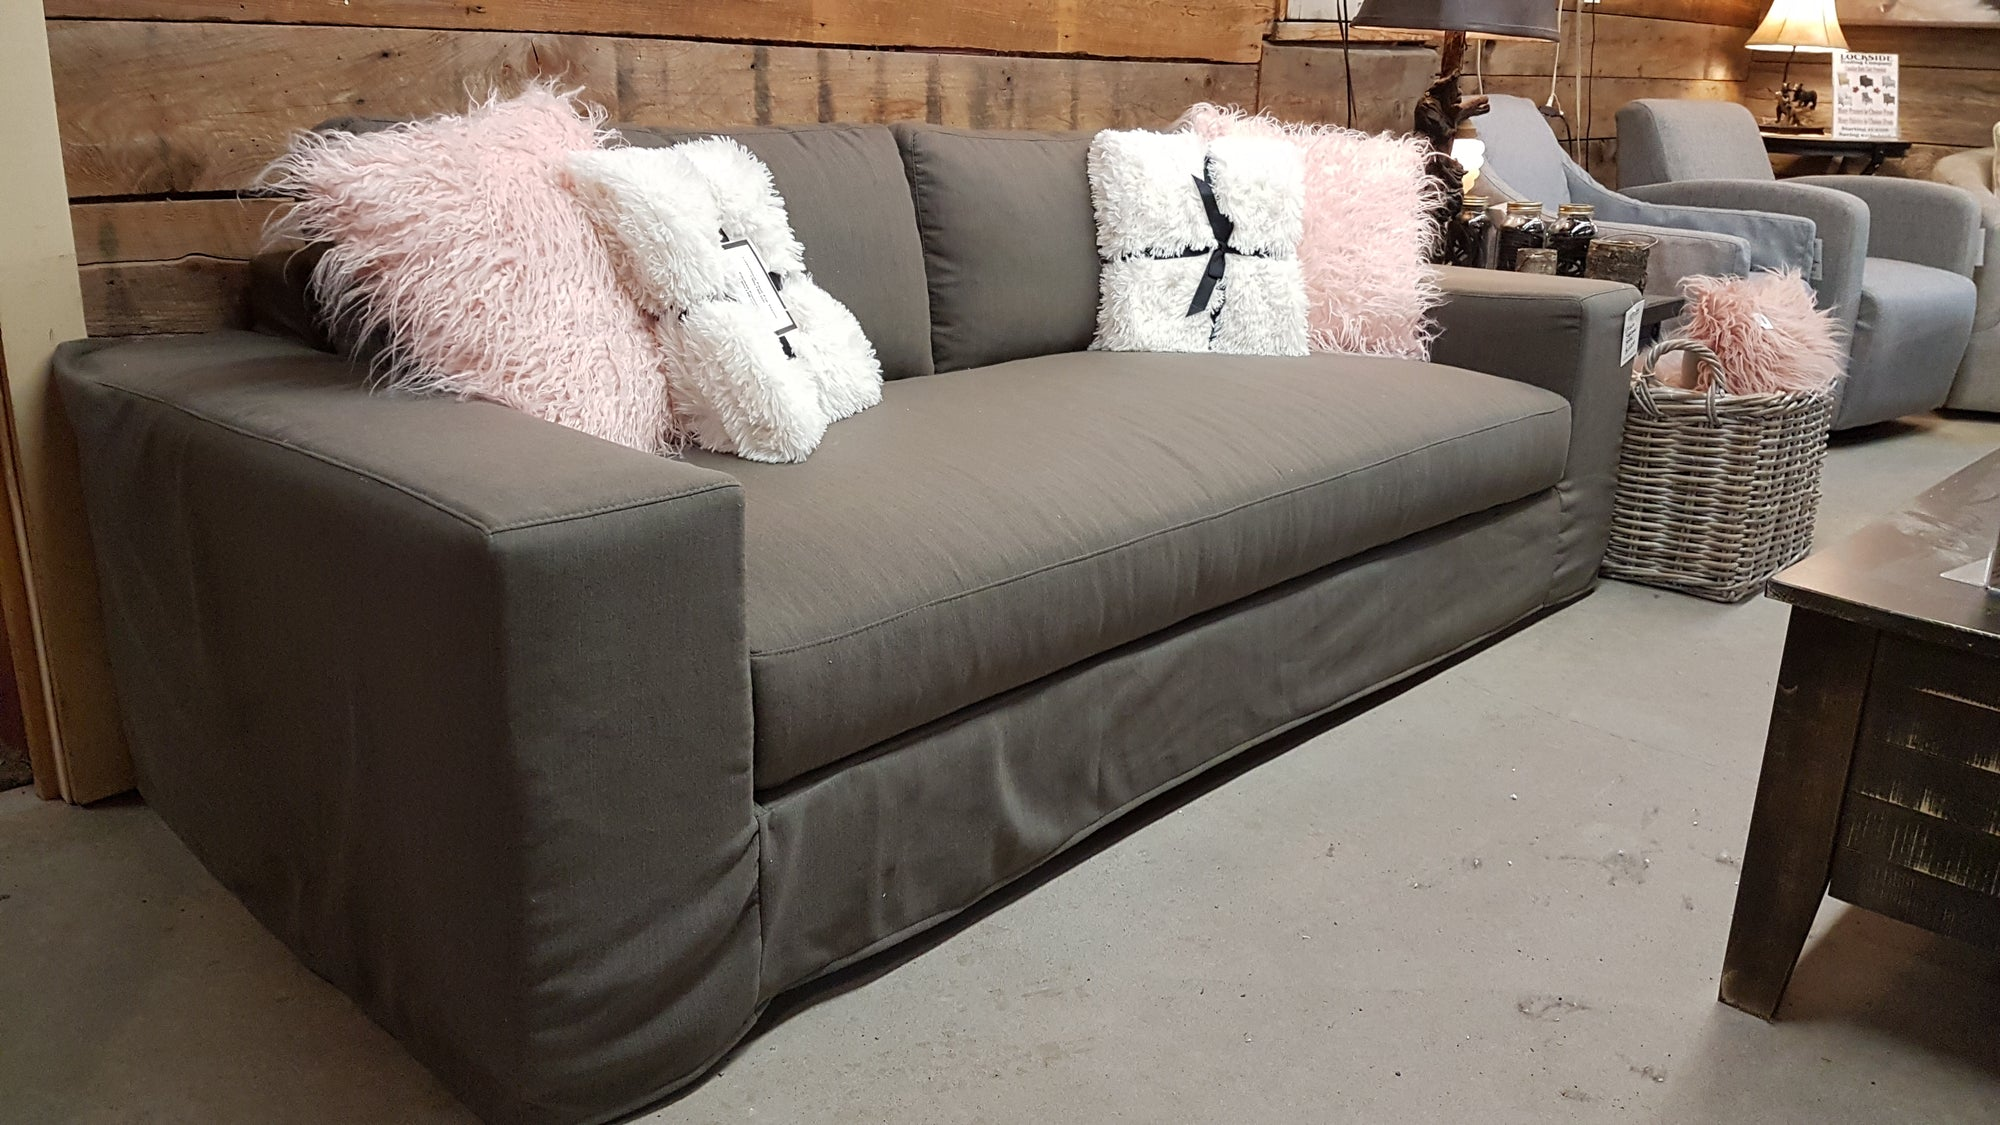 *FLOOR MODEL*  Draco Slipcover Sofa